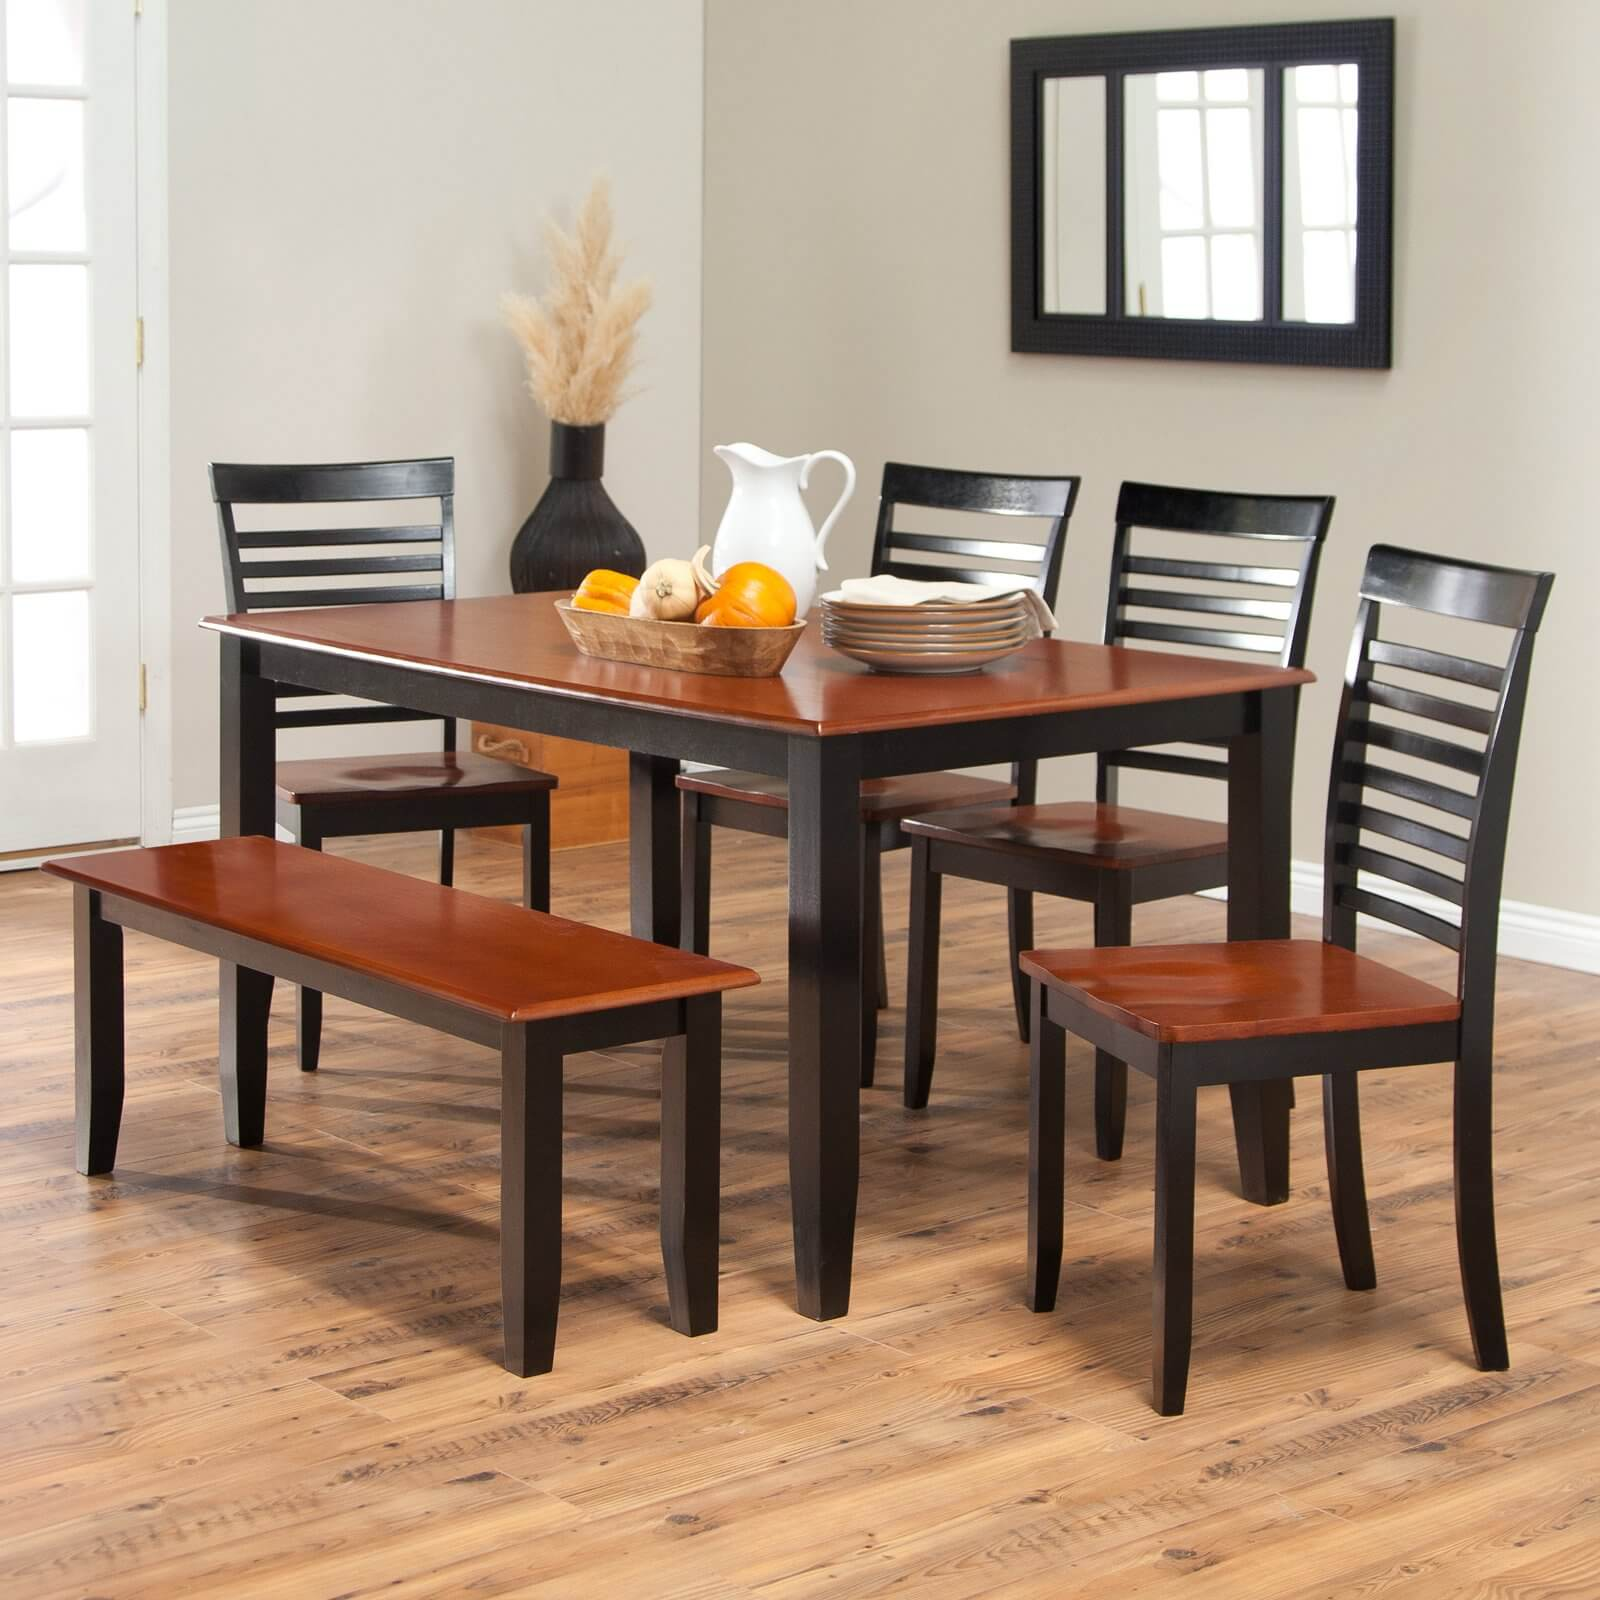 dining room sets bench seating two seat kitchen table Simple two toned dining set with bench The seats and table top are cherry